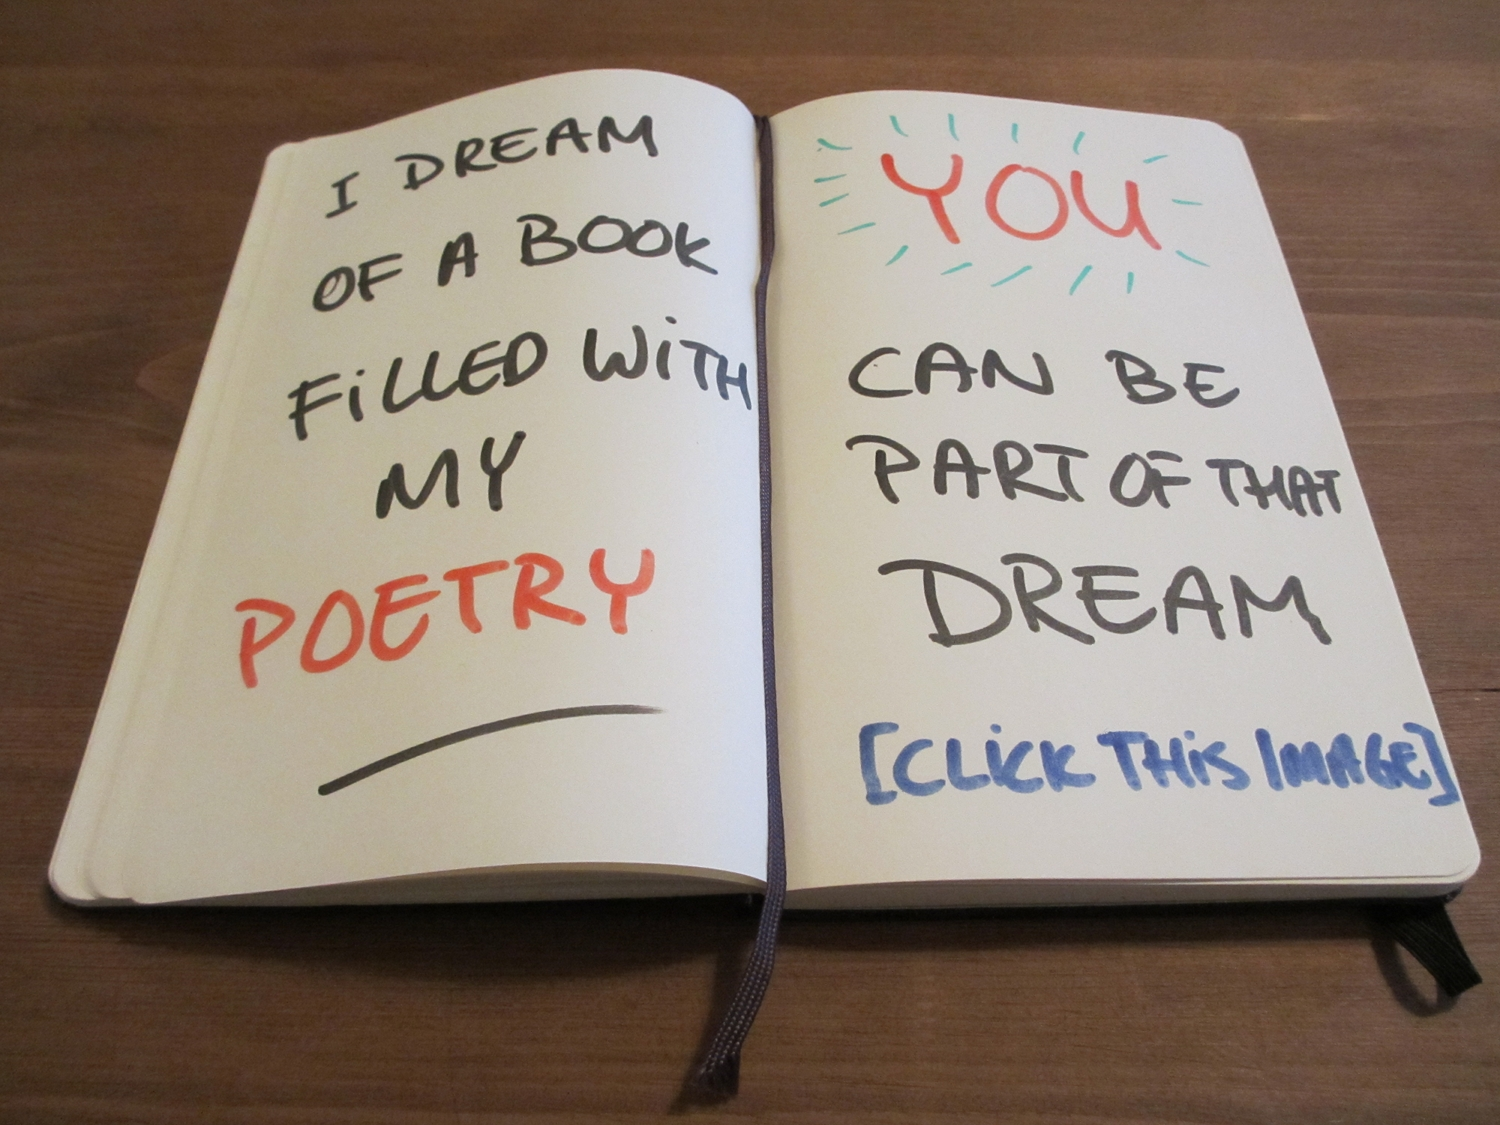 Be part of my dream to publish a poetry book